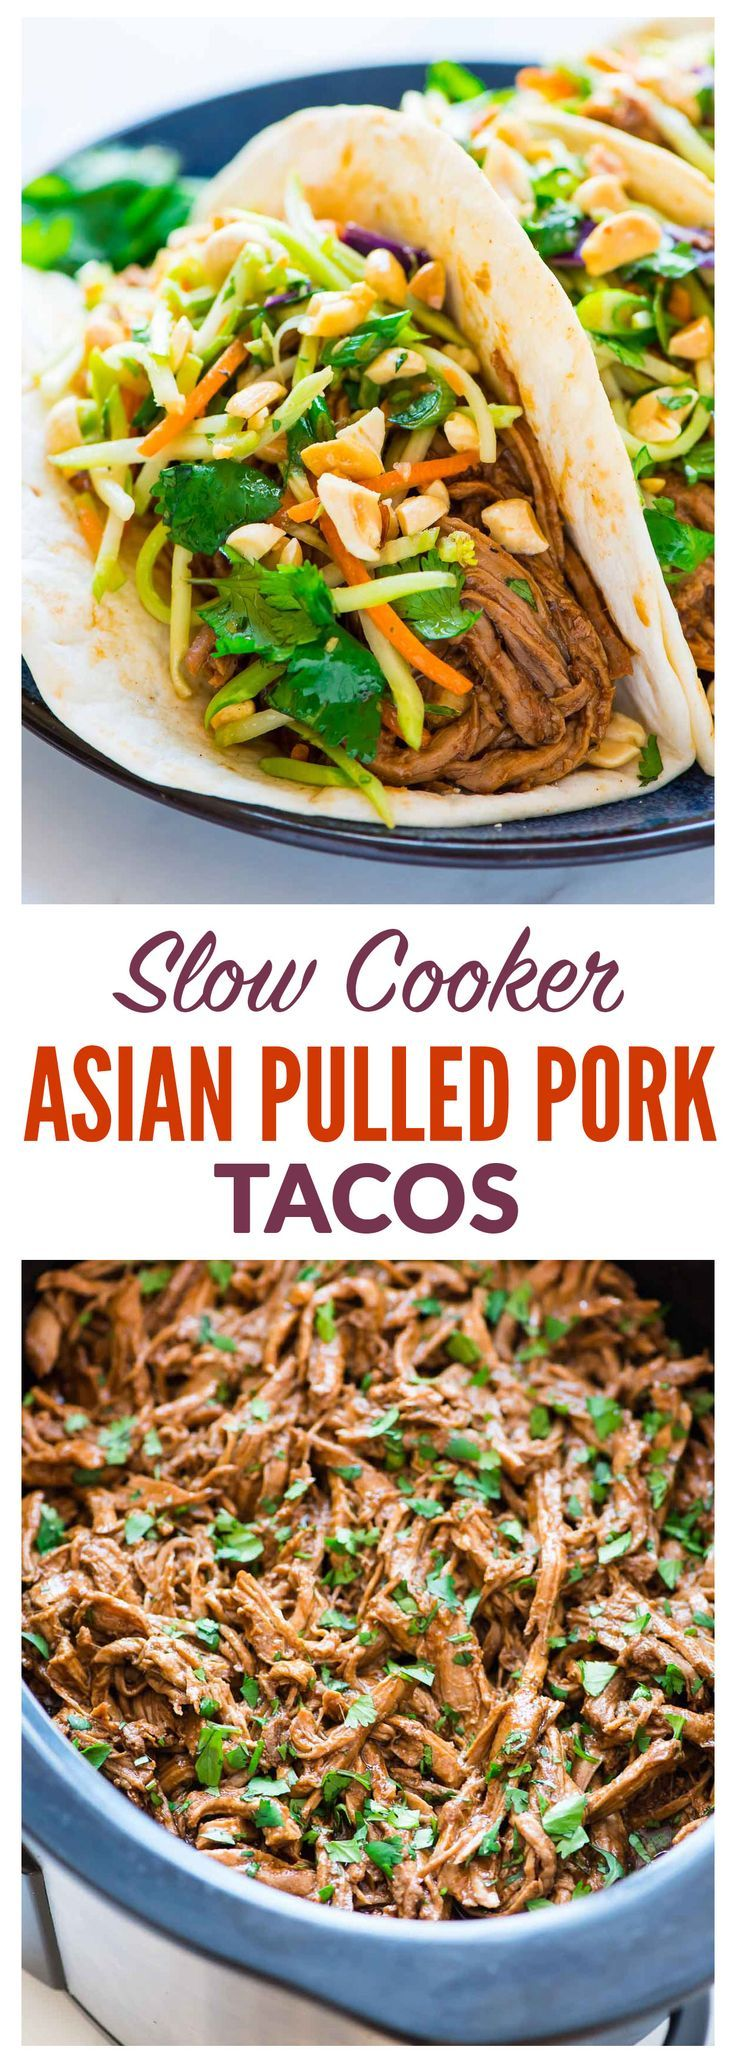 Melt-in-your-mouth Slow Cooker Pulled Pork with hoisin, ginger, and garlic, topped with crunchy peanut broccoli slaw. Made with pork tenderloin for a healthier cut than pork shoulder! EASY Asian pulled pork recipe that's perfect for a crowd. The crockpot does the work! Recipe at wellplated.com | @wellplated